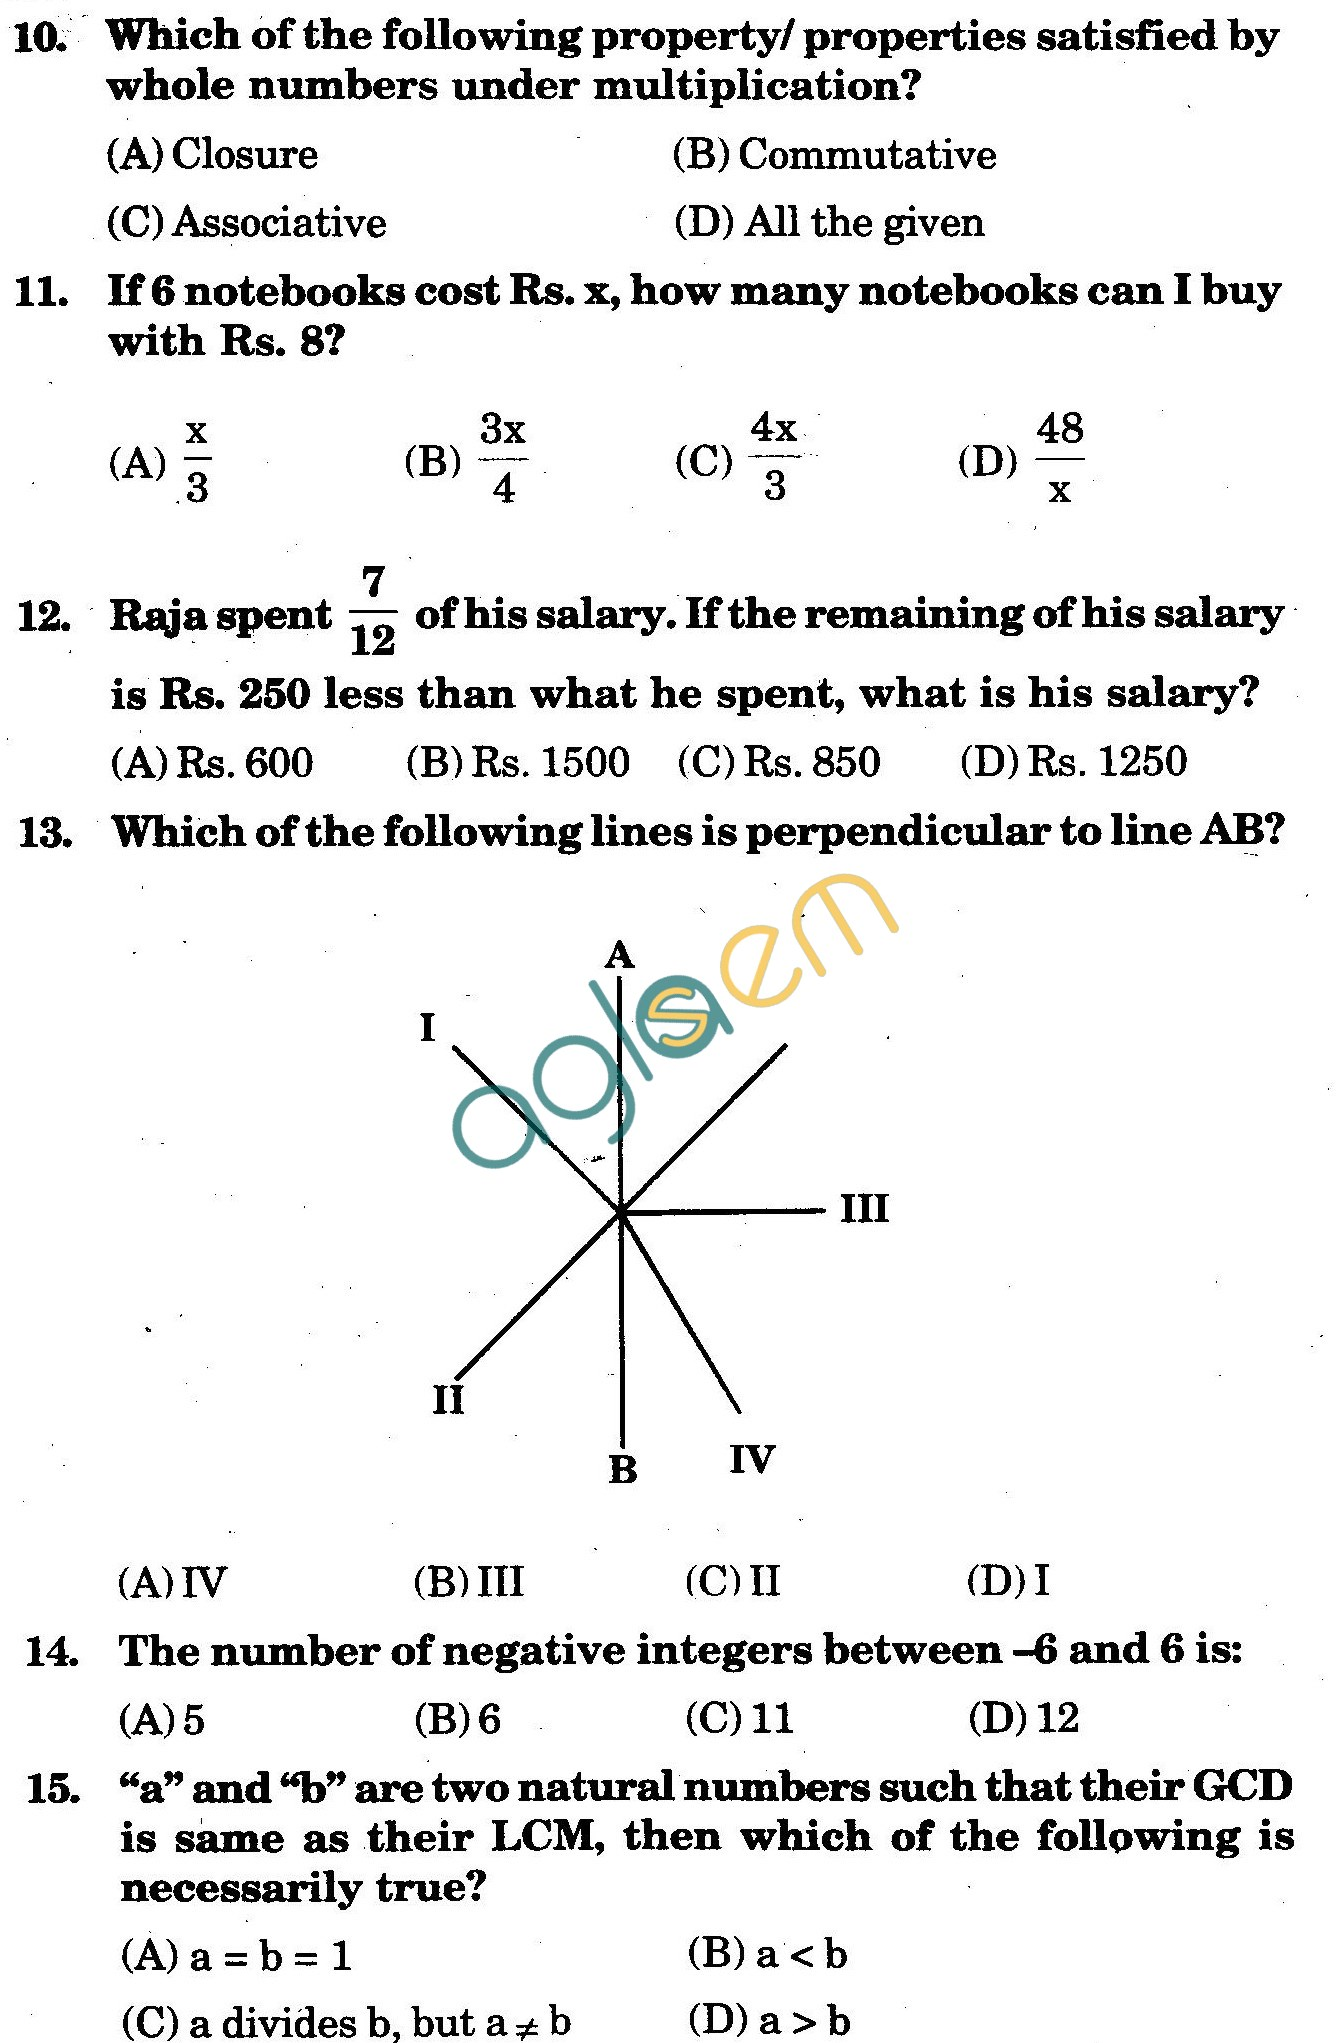 NSTSE 2010: Class VI Question Paper with Answers - Mathematics